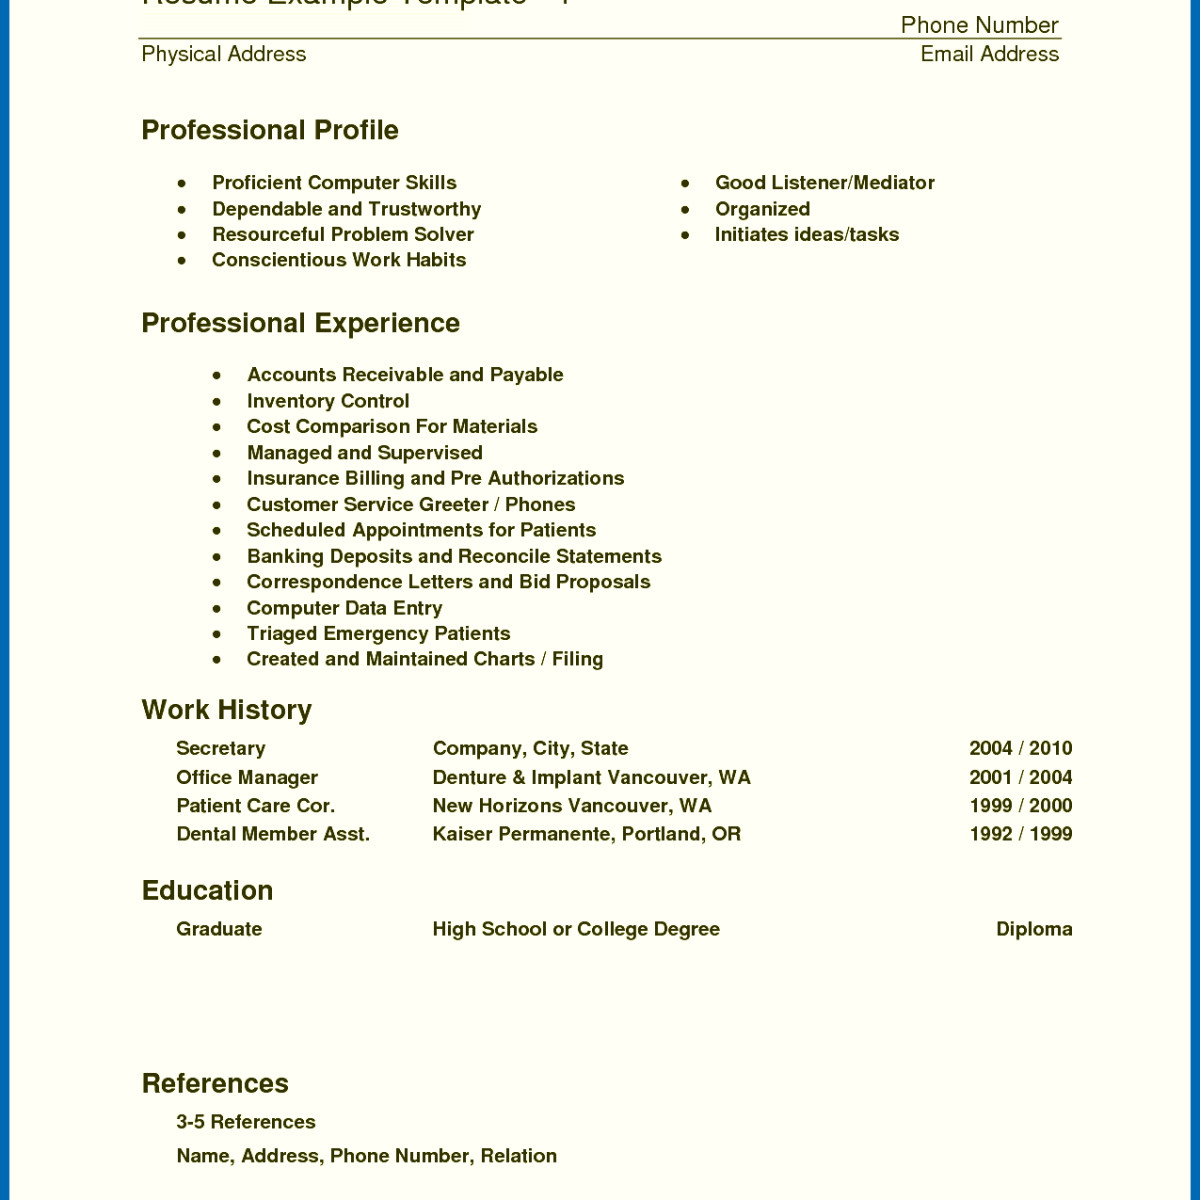 Medical School Resume - Resume Medical assistant Examples Awesome Resume Skills for Customer